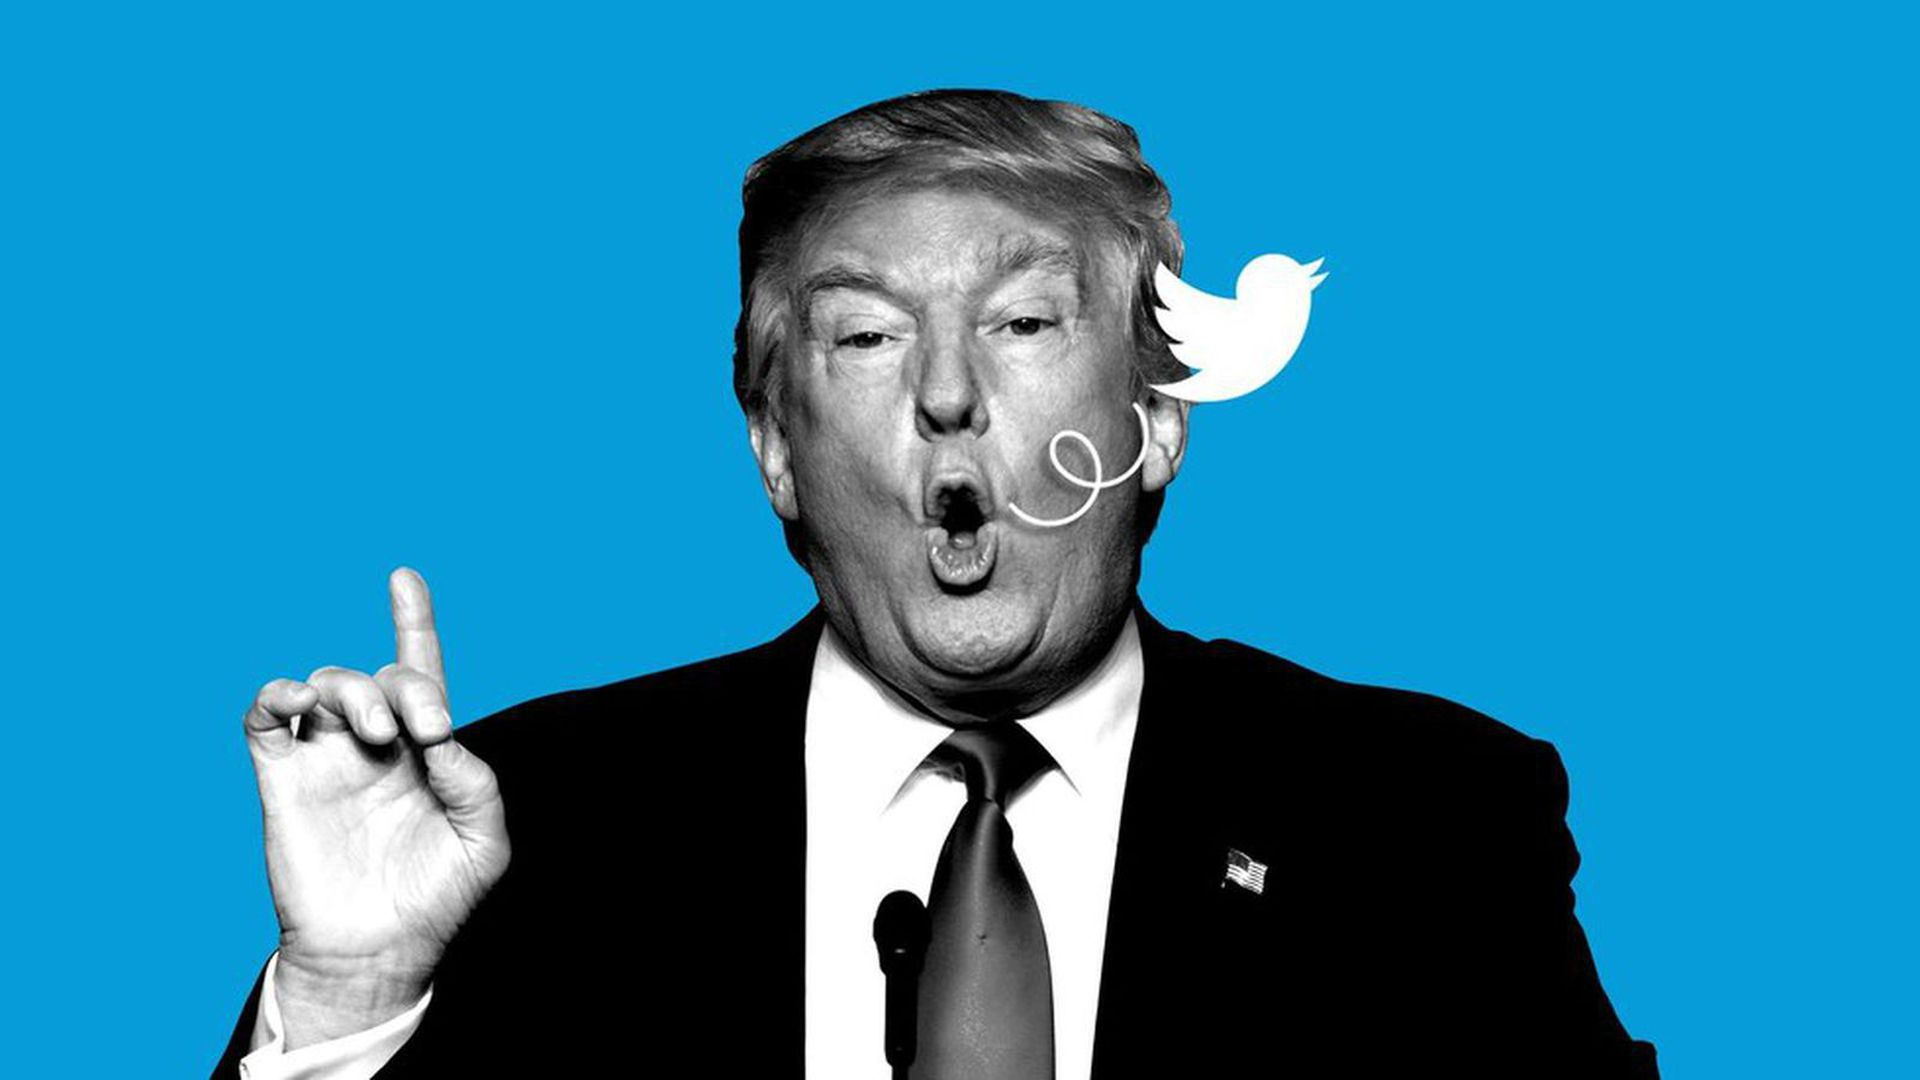 Illustration of President Trump's face with a Twitter bird flying out of his mouth